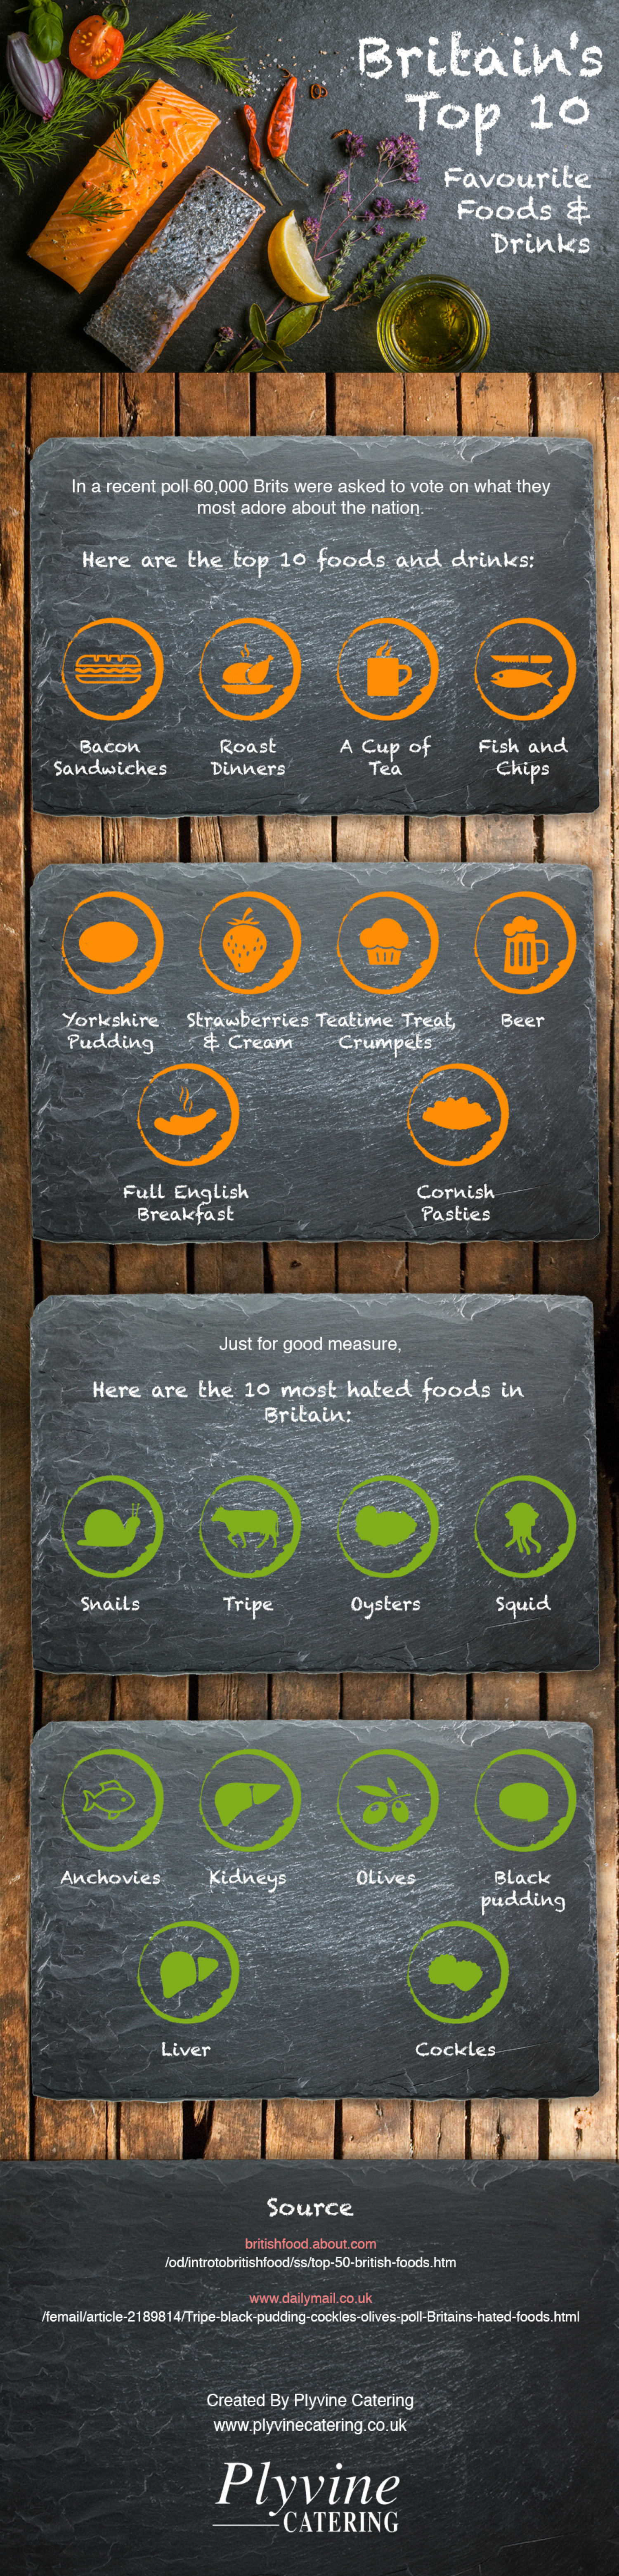 Britain's Top 10 Favourite Foods and Drinks Infographic